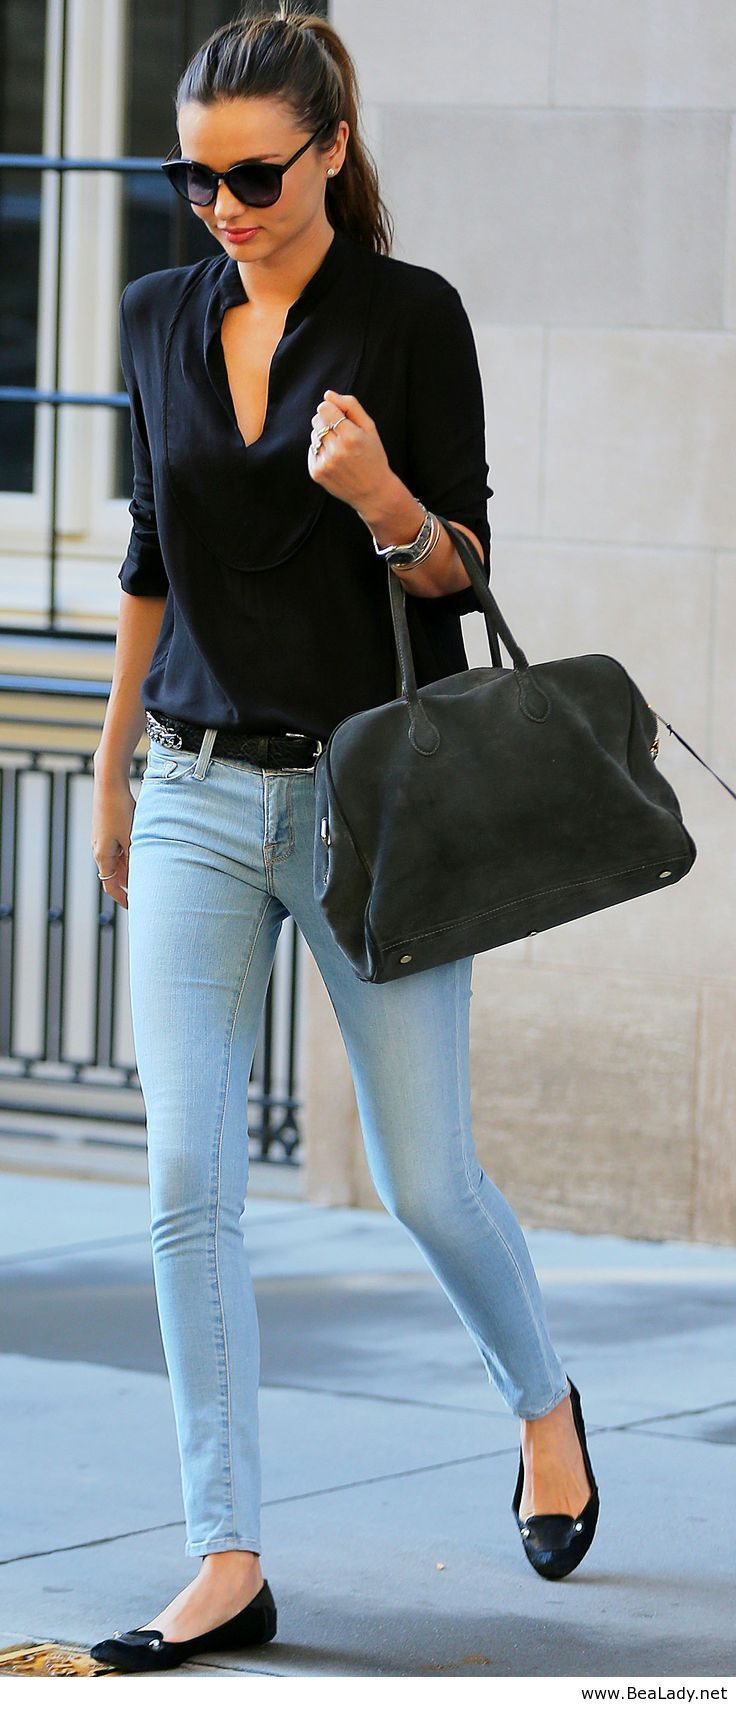 Light jeans for street - Miranda Kerr style icon                                                                                                                                                      Más